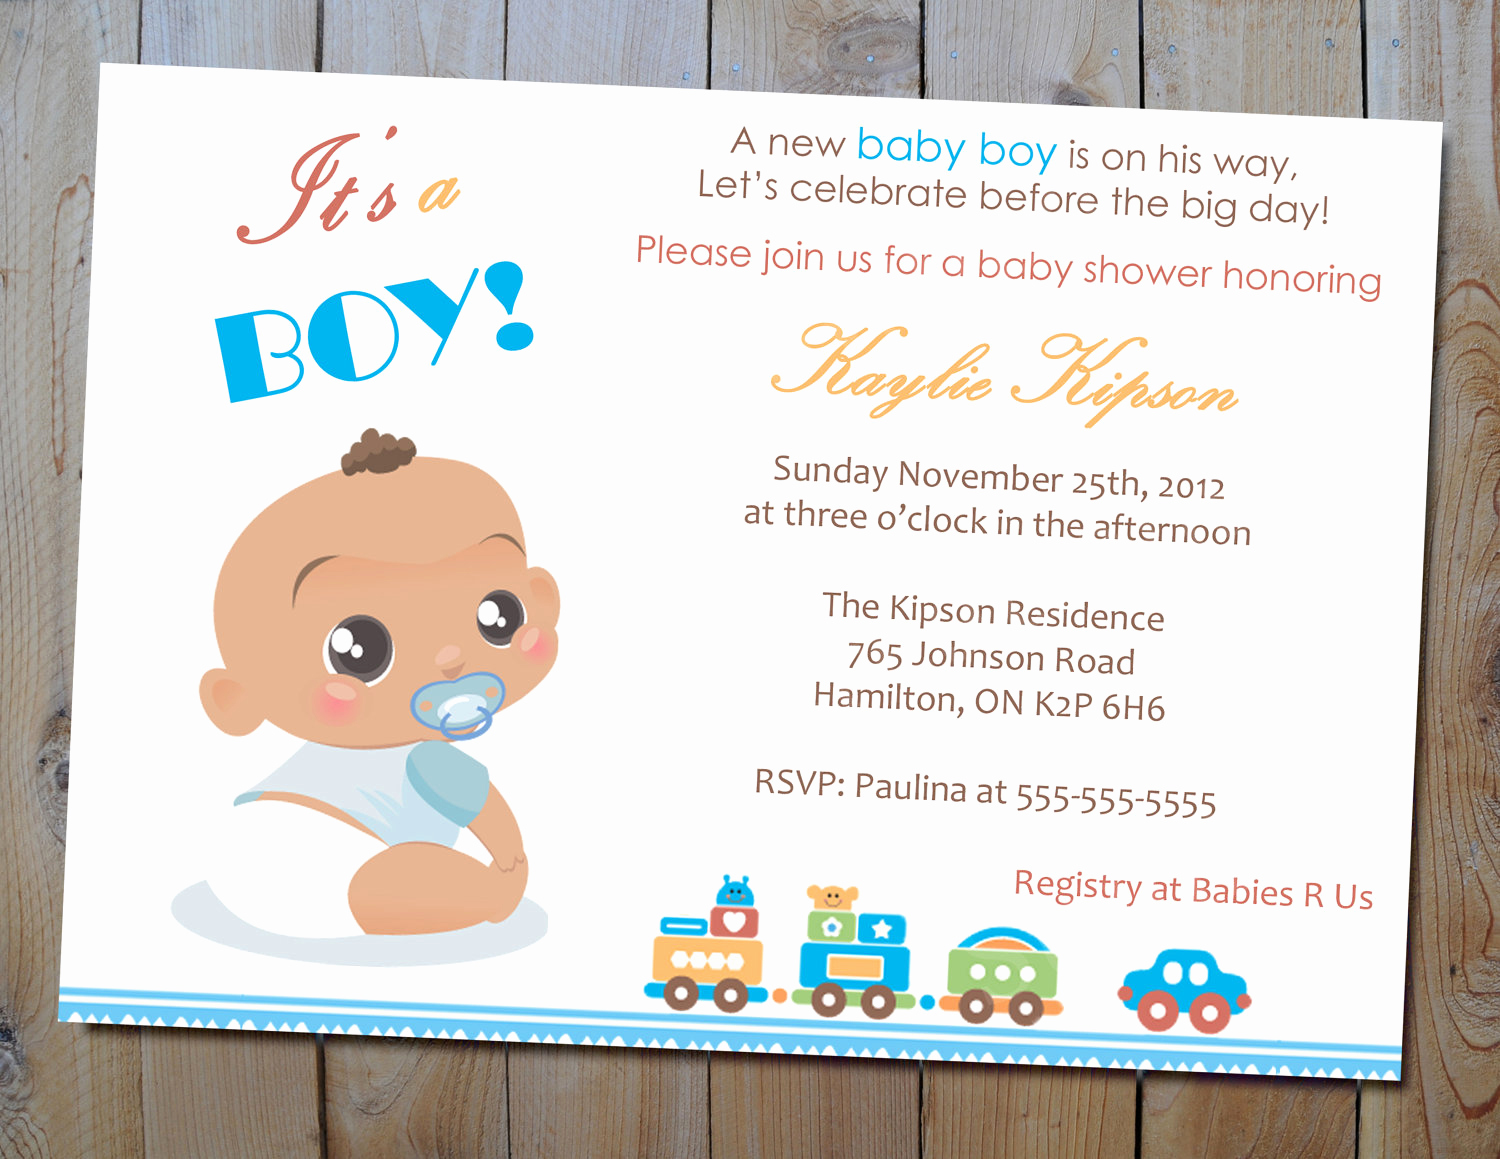 Baby Shower Invitation Ideas Lovely Baby Shower Invitations Ideas for A Boy